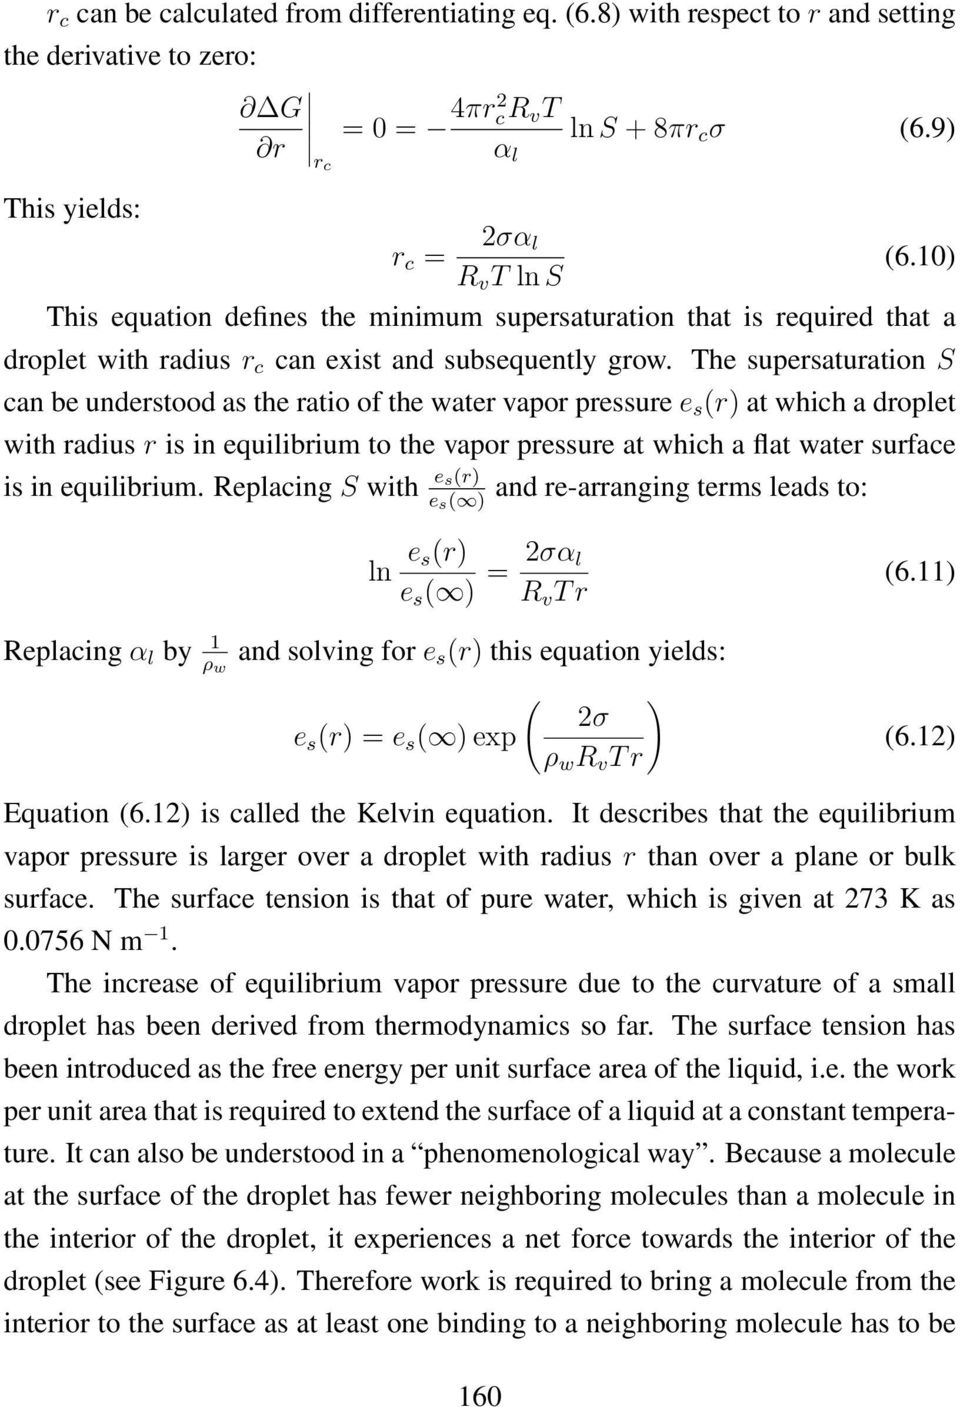 The supersaturation S can be understood as the ratio of the water vapor pressure e s (r) at which a droplet with radius r is in equilibrium to the vapor pressure at which a flat water surface is in